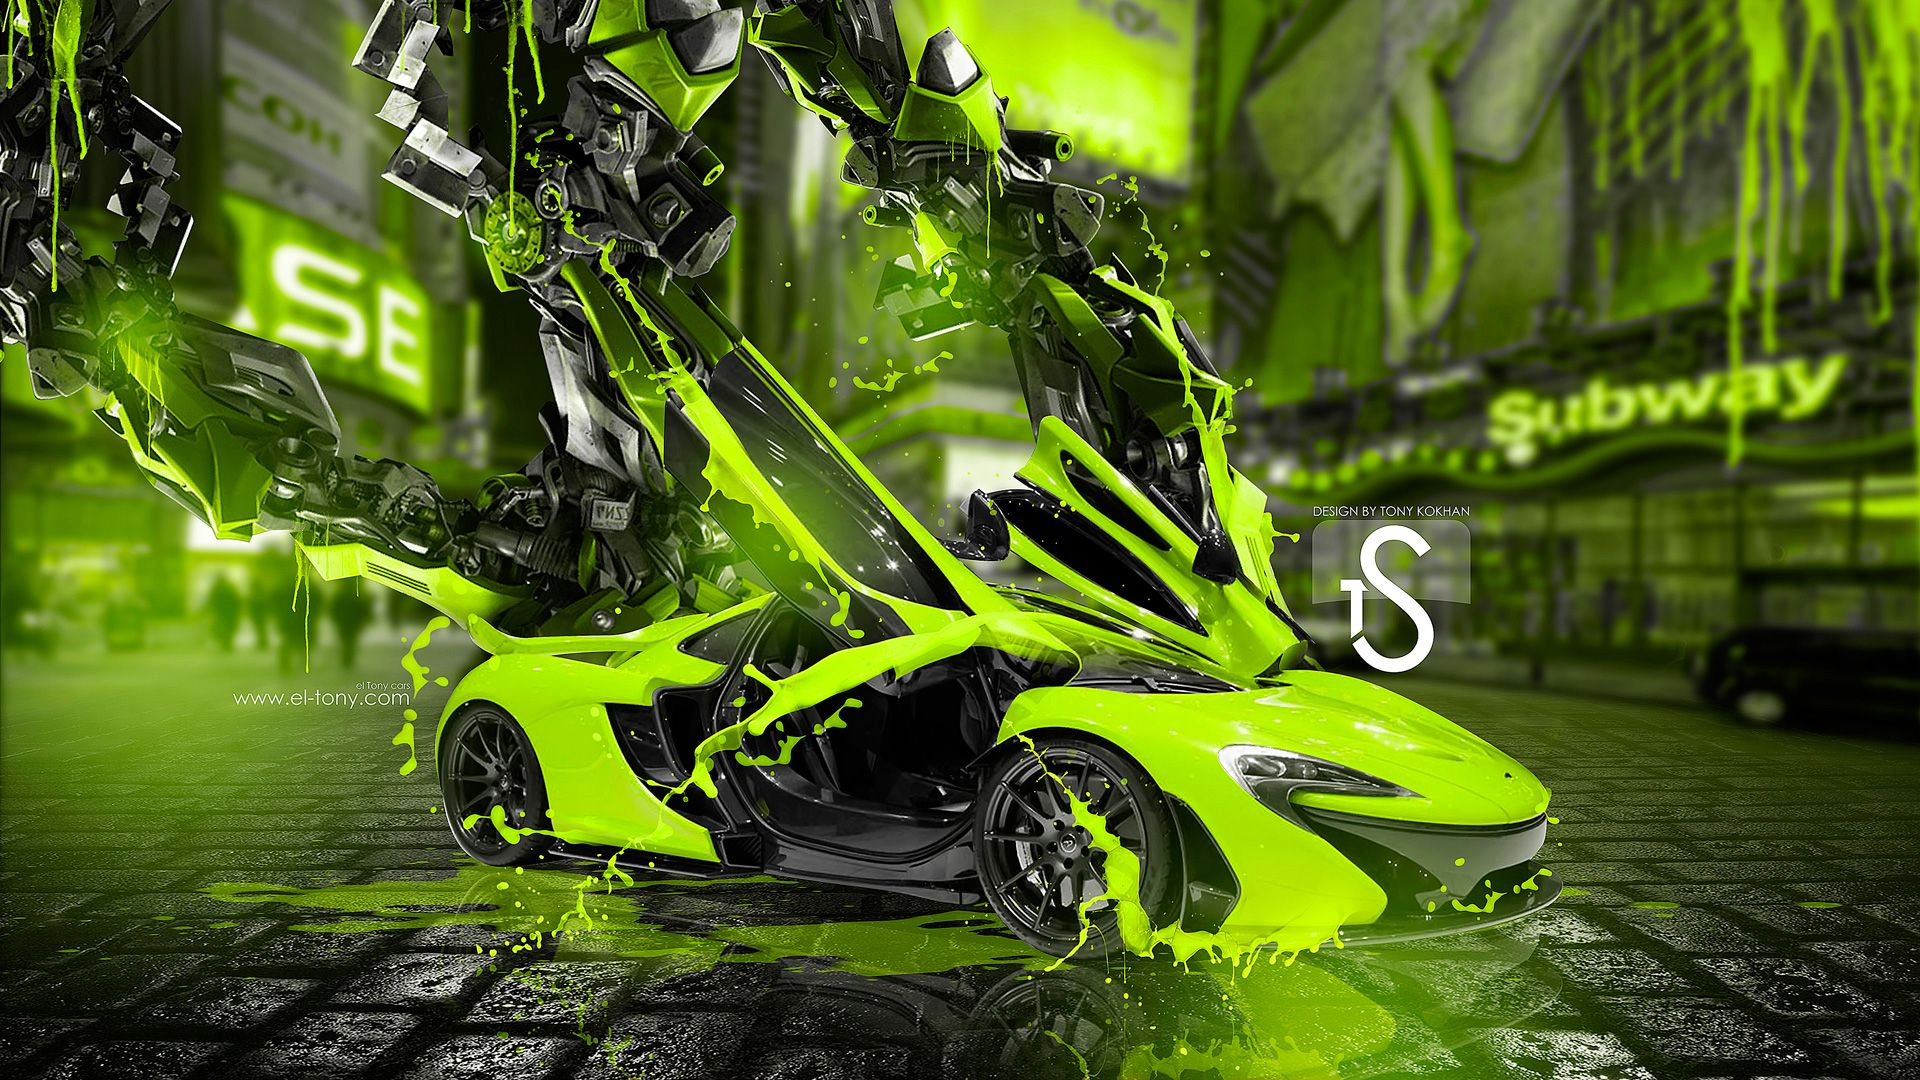 Awesome McLaren P1 Fantasy Transformer City Car 2014 HD Wallpaper | Wallpaper HD